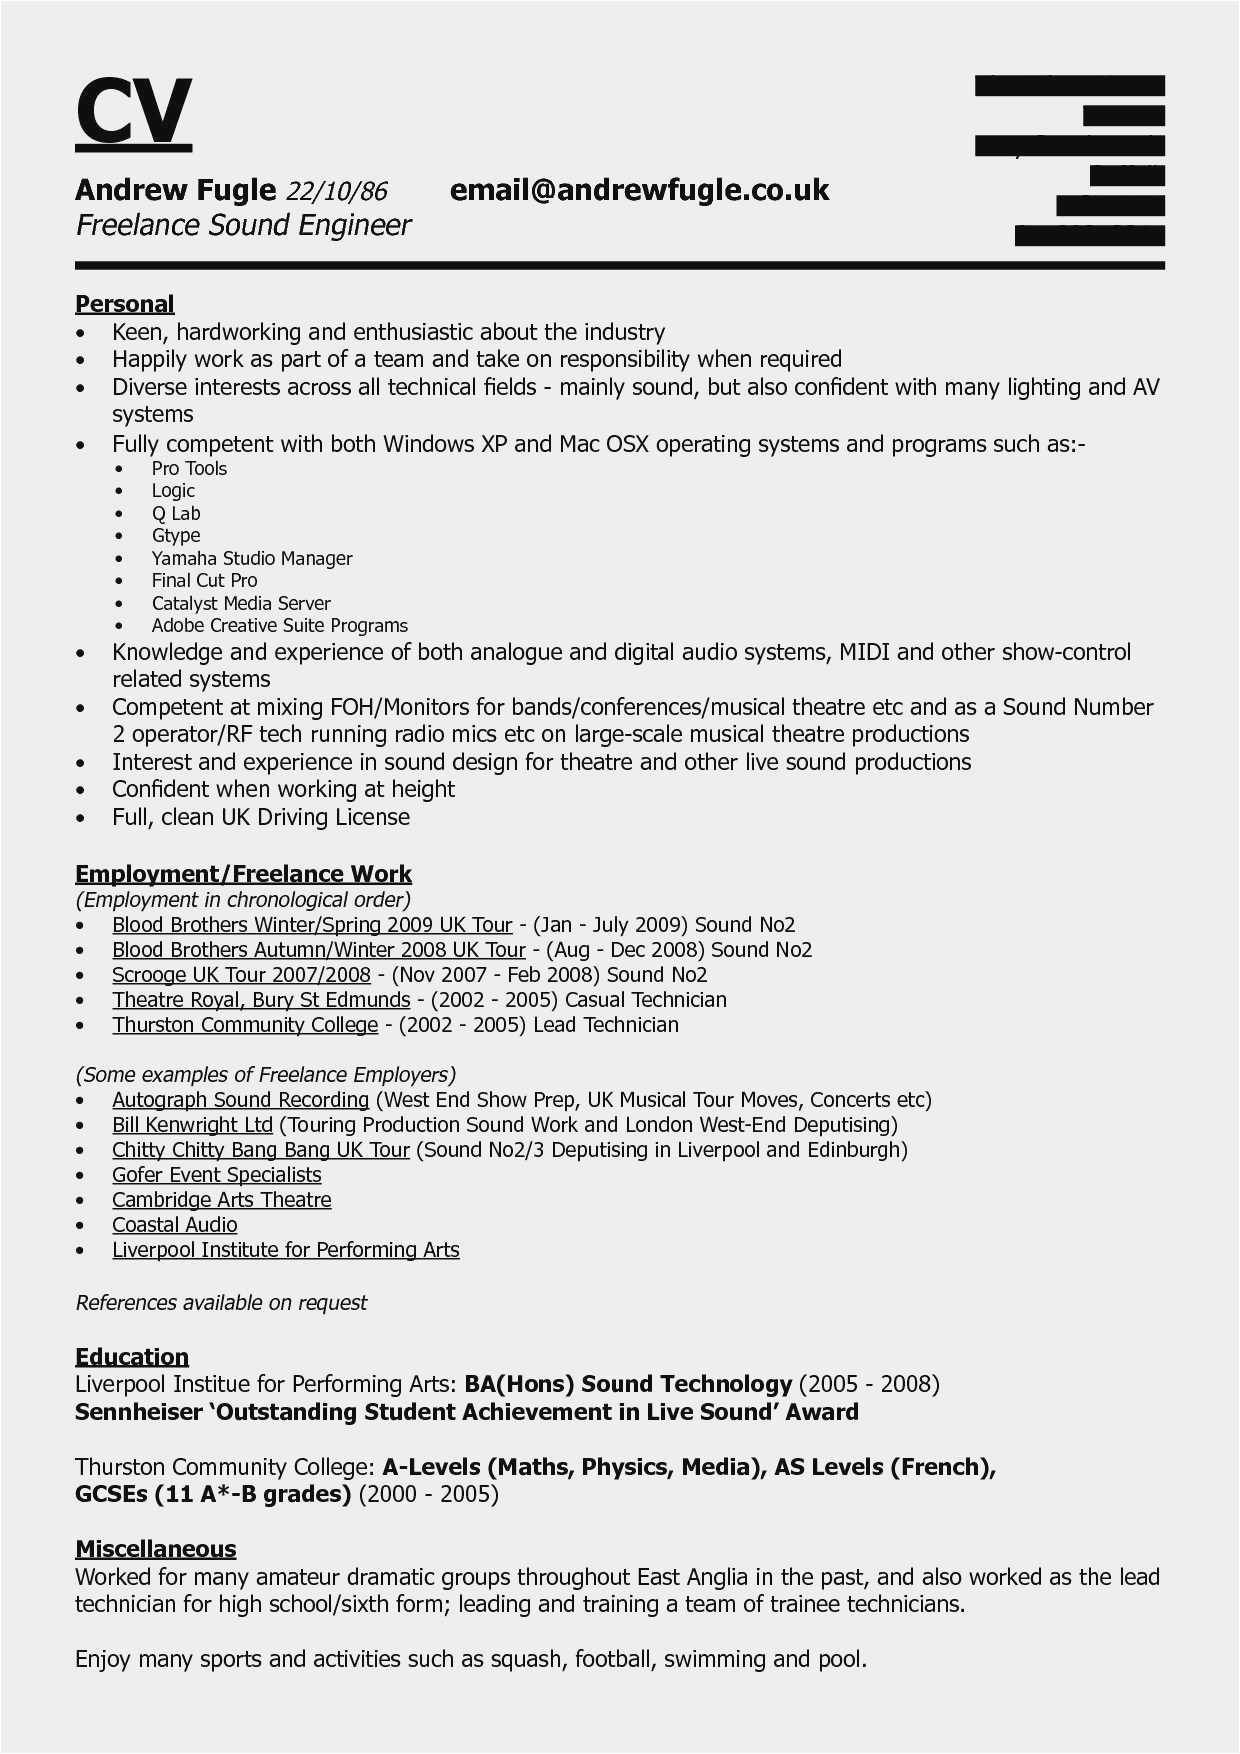 Social Media Resume Example Awesome Free 20 Business Manager Contract Template New Social Media Resume References Engineering Resume Marketing Resume